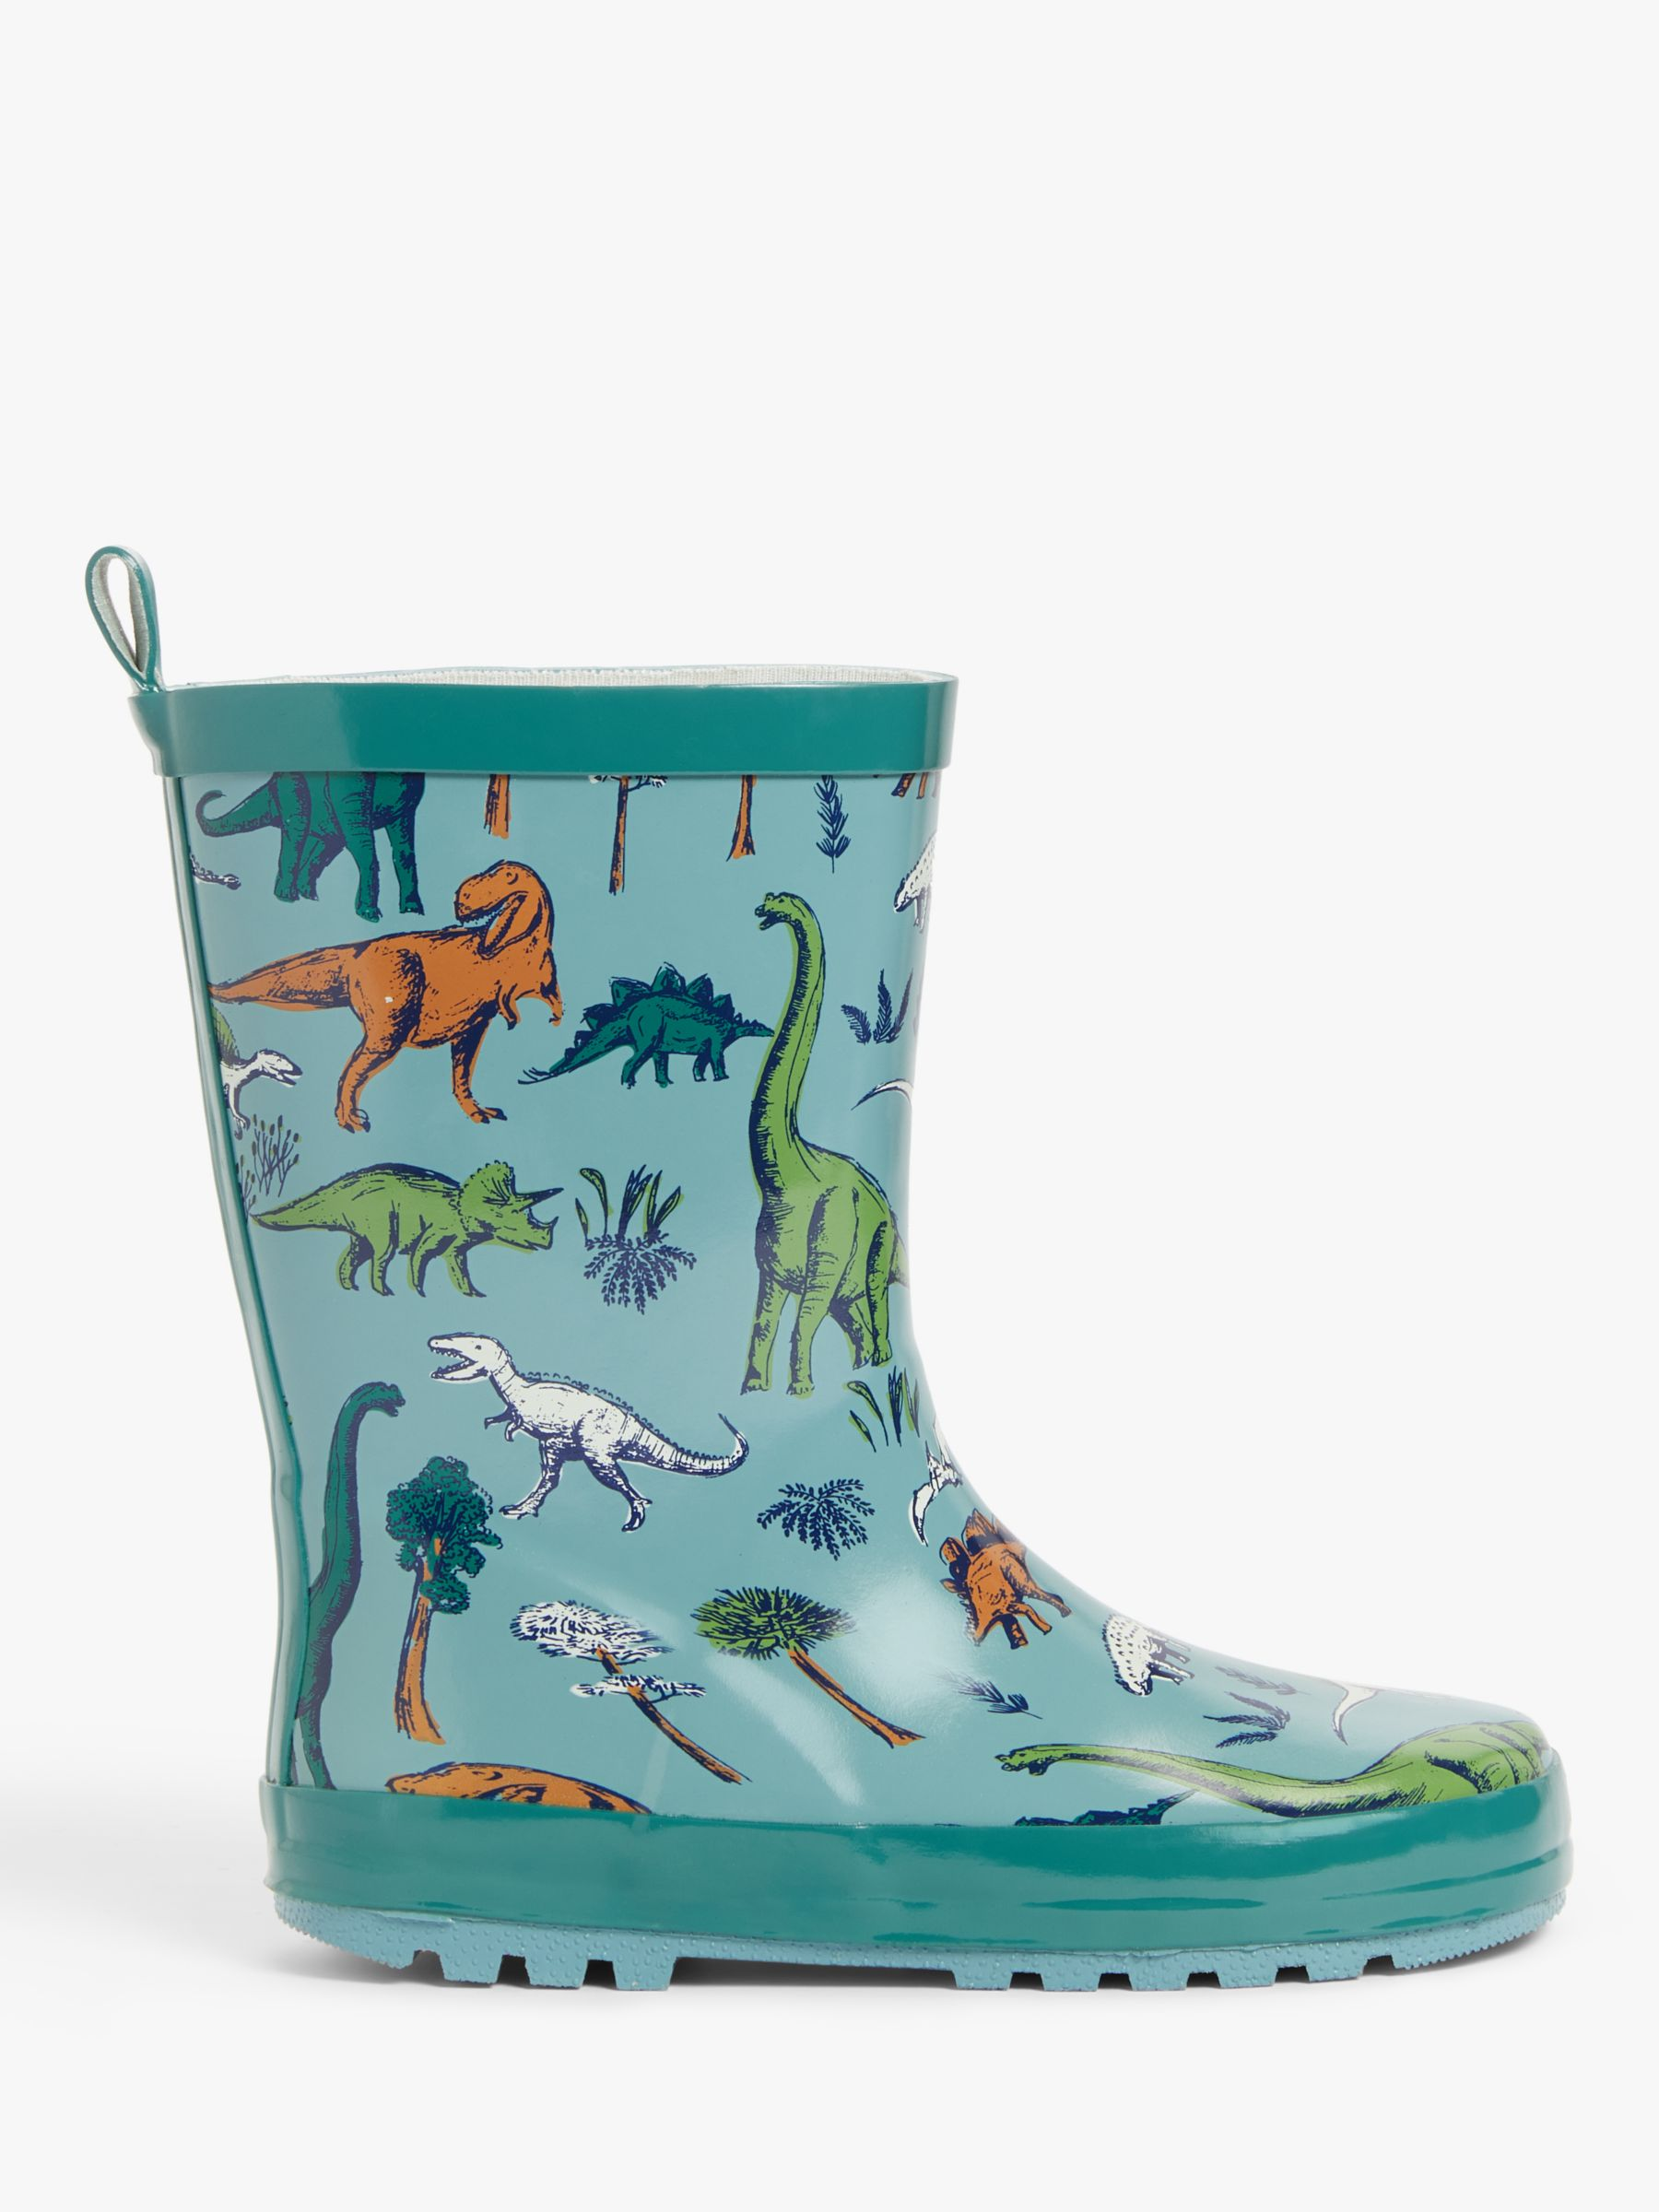 JOHN LEWIS Minion Design WELLIES //Wellington Boots SIZE 7 Brand New Younger